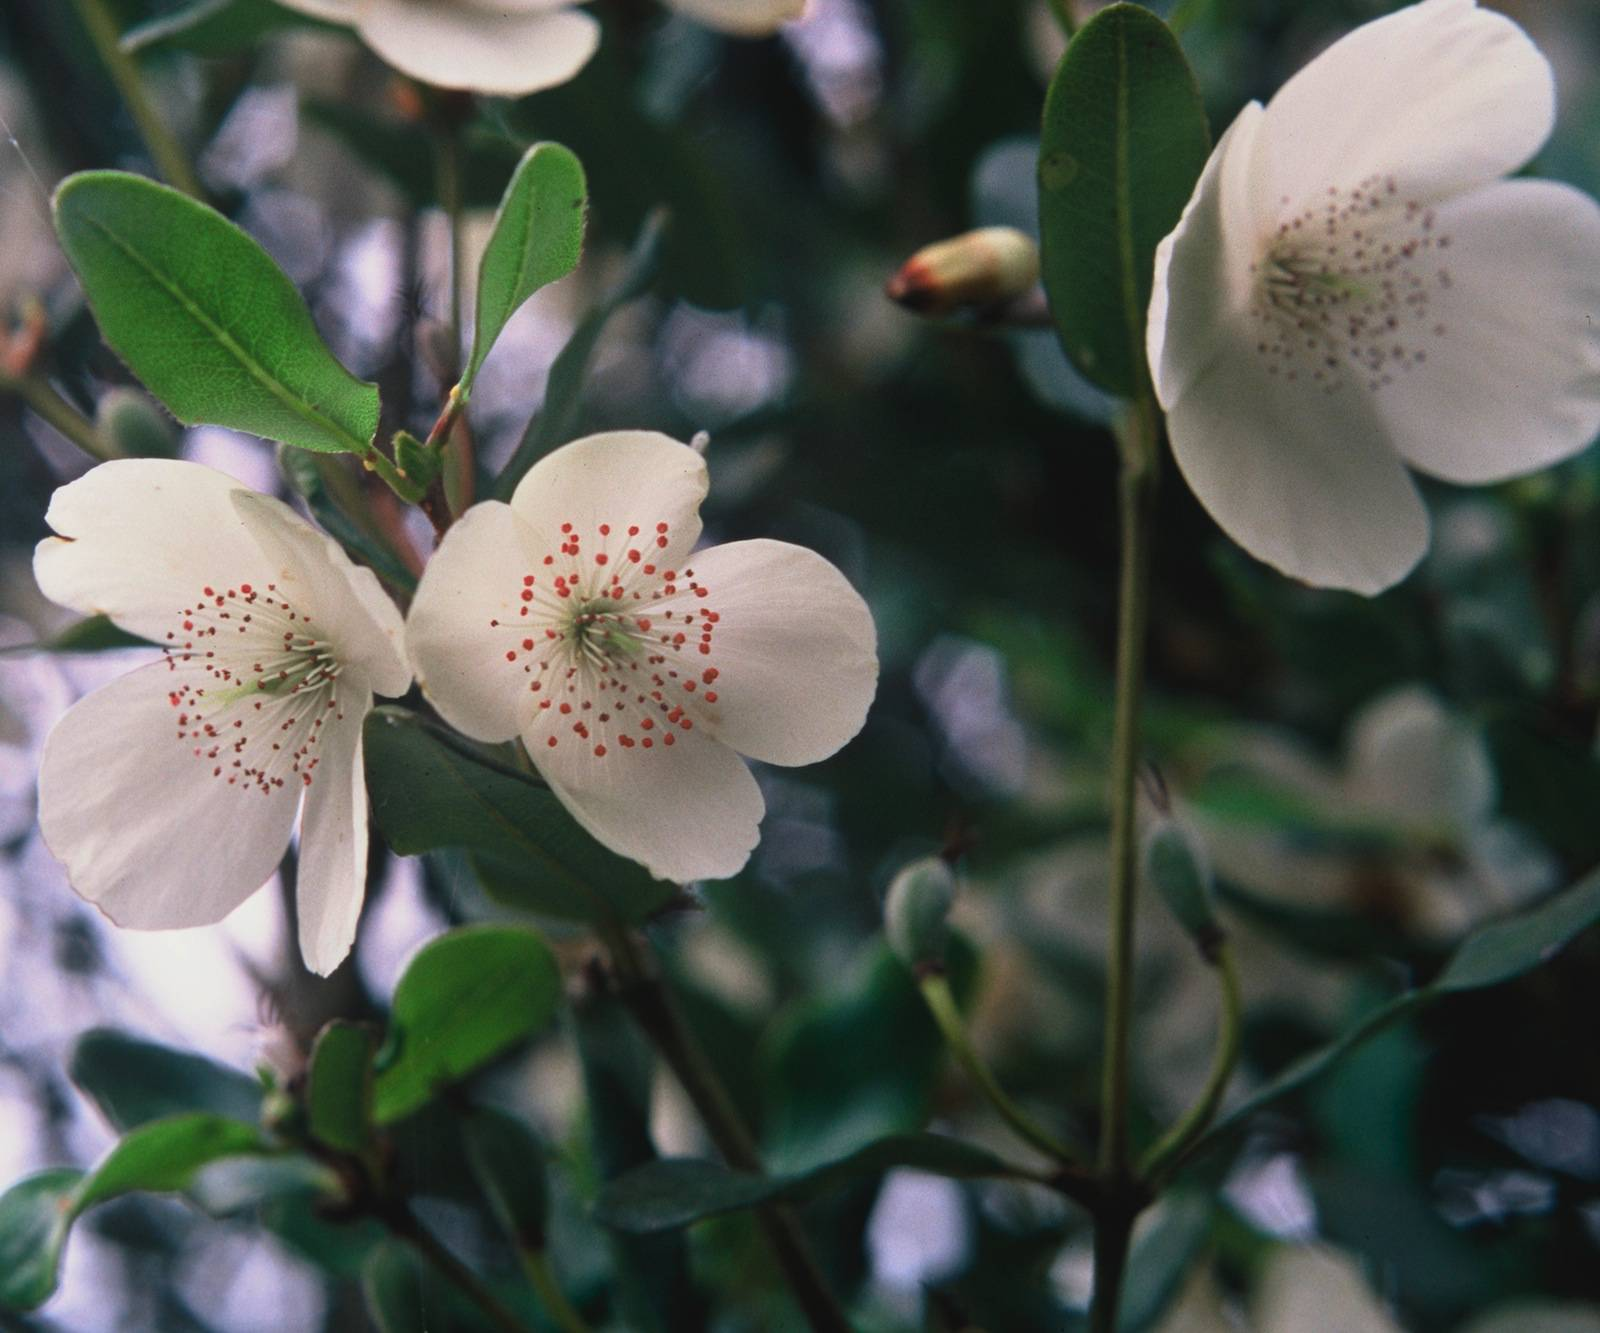 Eucryphia lucida - Leatherwood - Flowers. photos by https://www.whitehousenursery.com.au/trees-and-shrubs/display/467-eucryphia-lucida-tasmanian-leatherwood